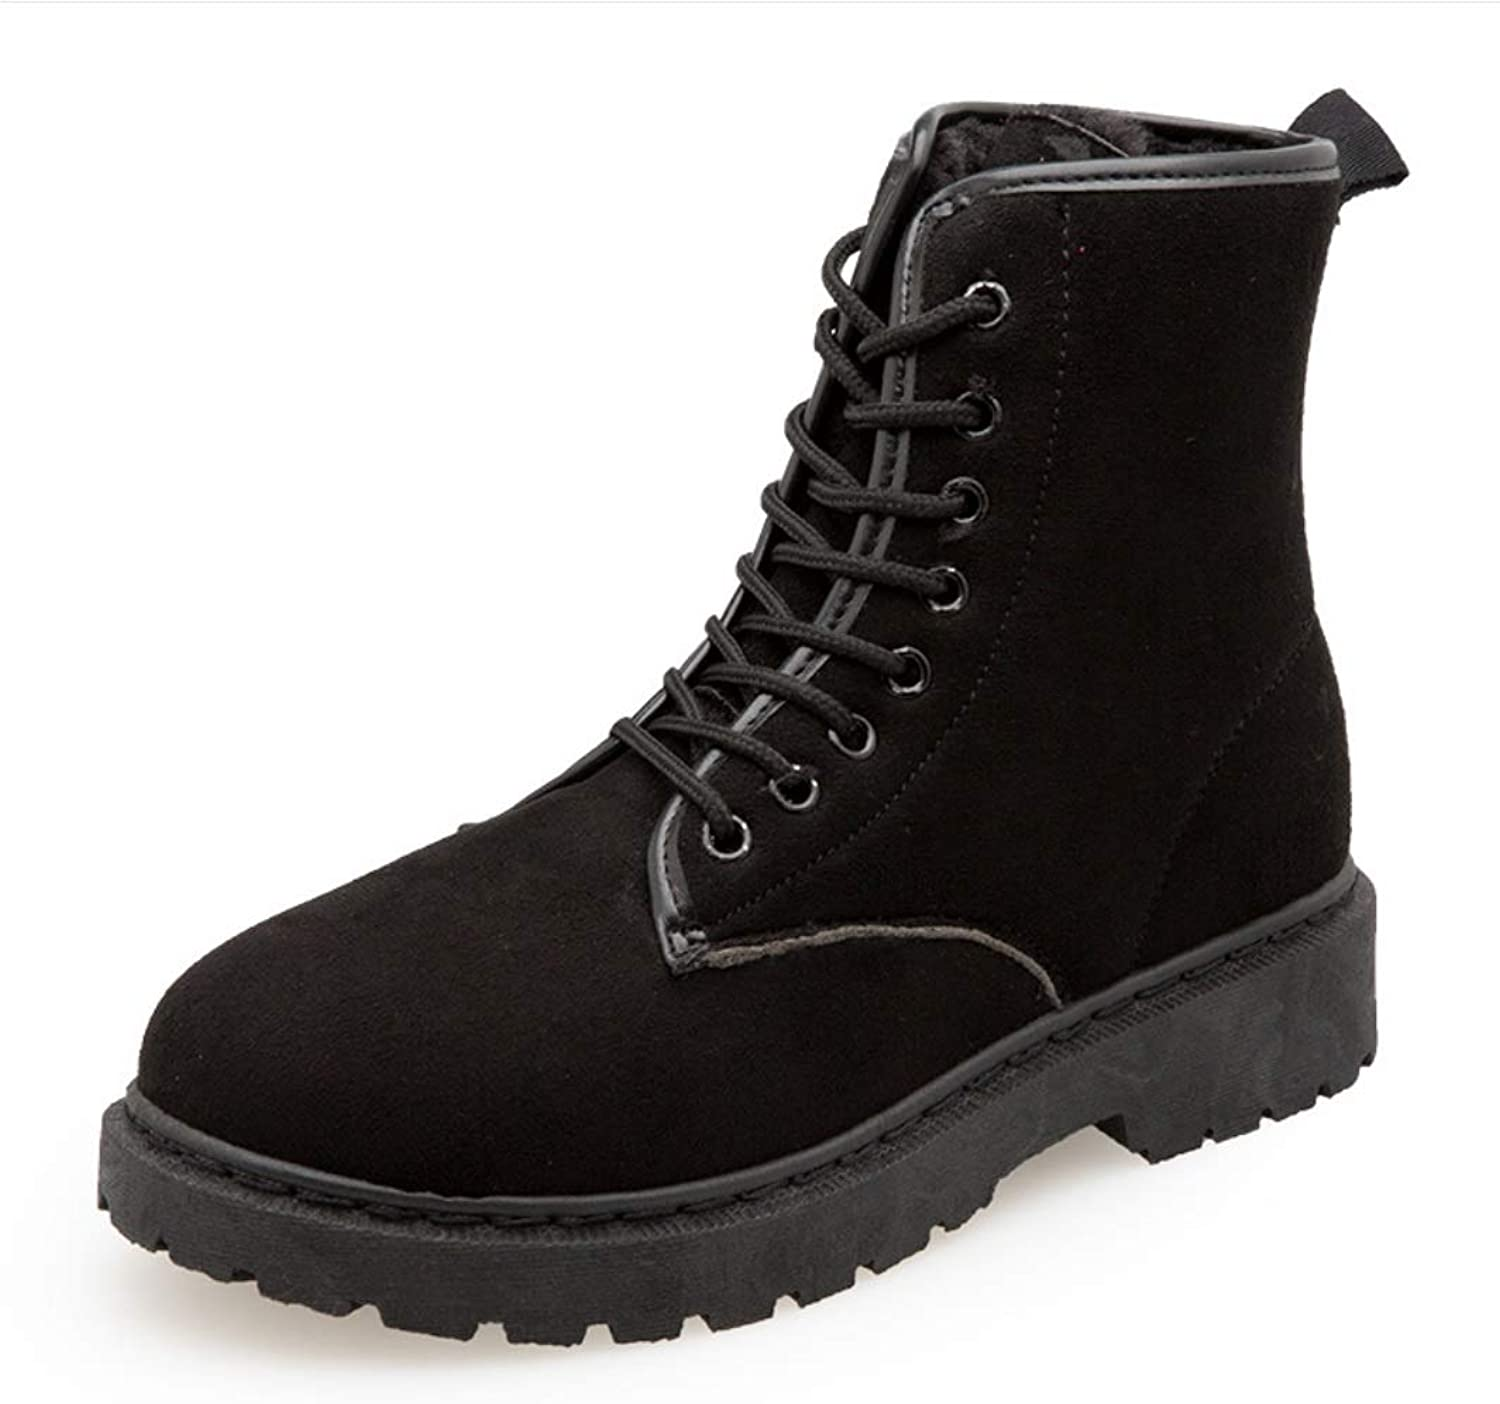 Womens Winter Flat Ankle Boots Trainer Lace Up Casual Boots Fur Lined Grip Sole Army Combat Boots shoes Size Comfortable Keep Warm